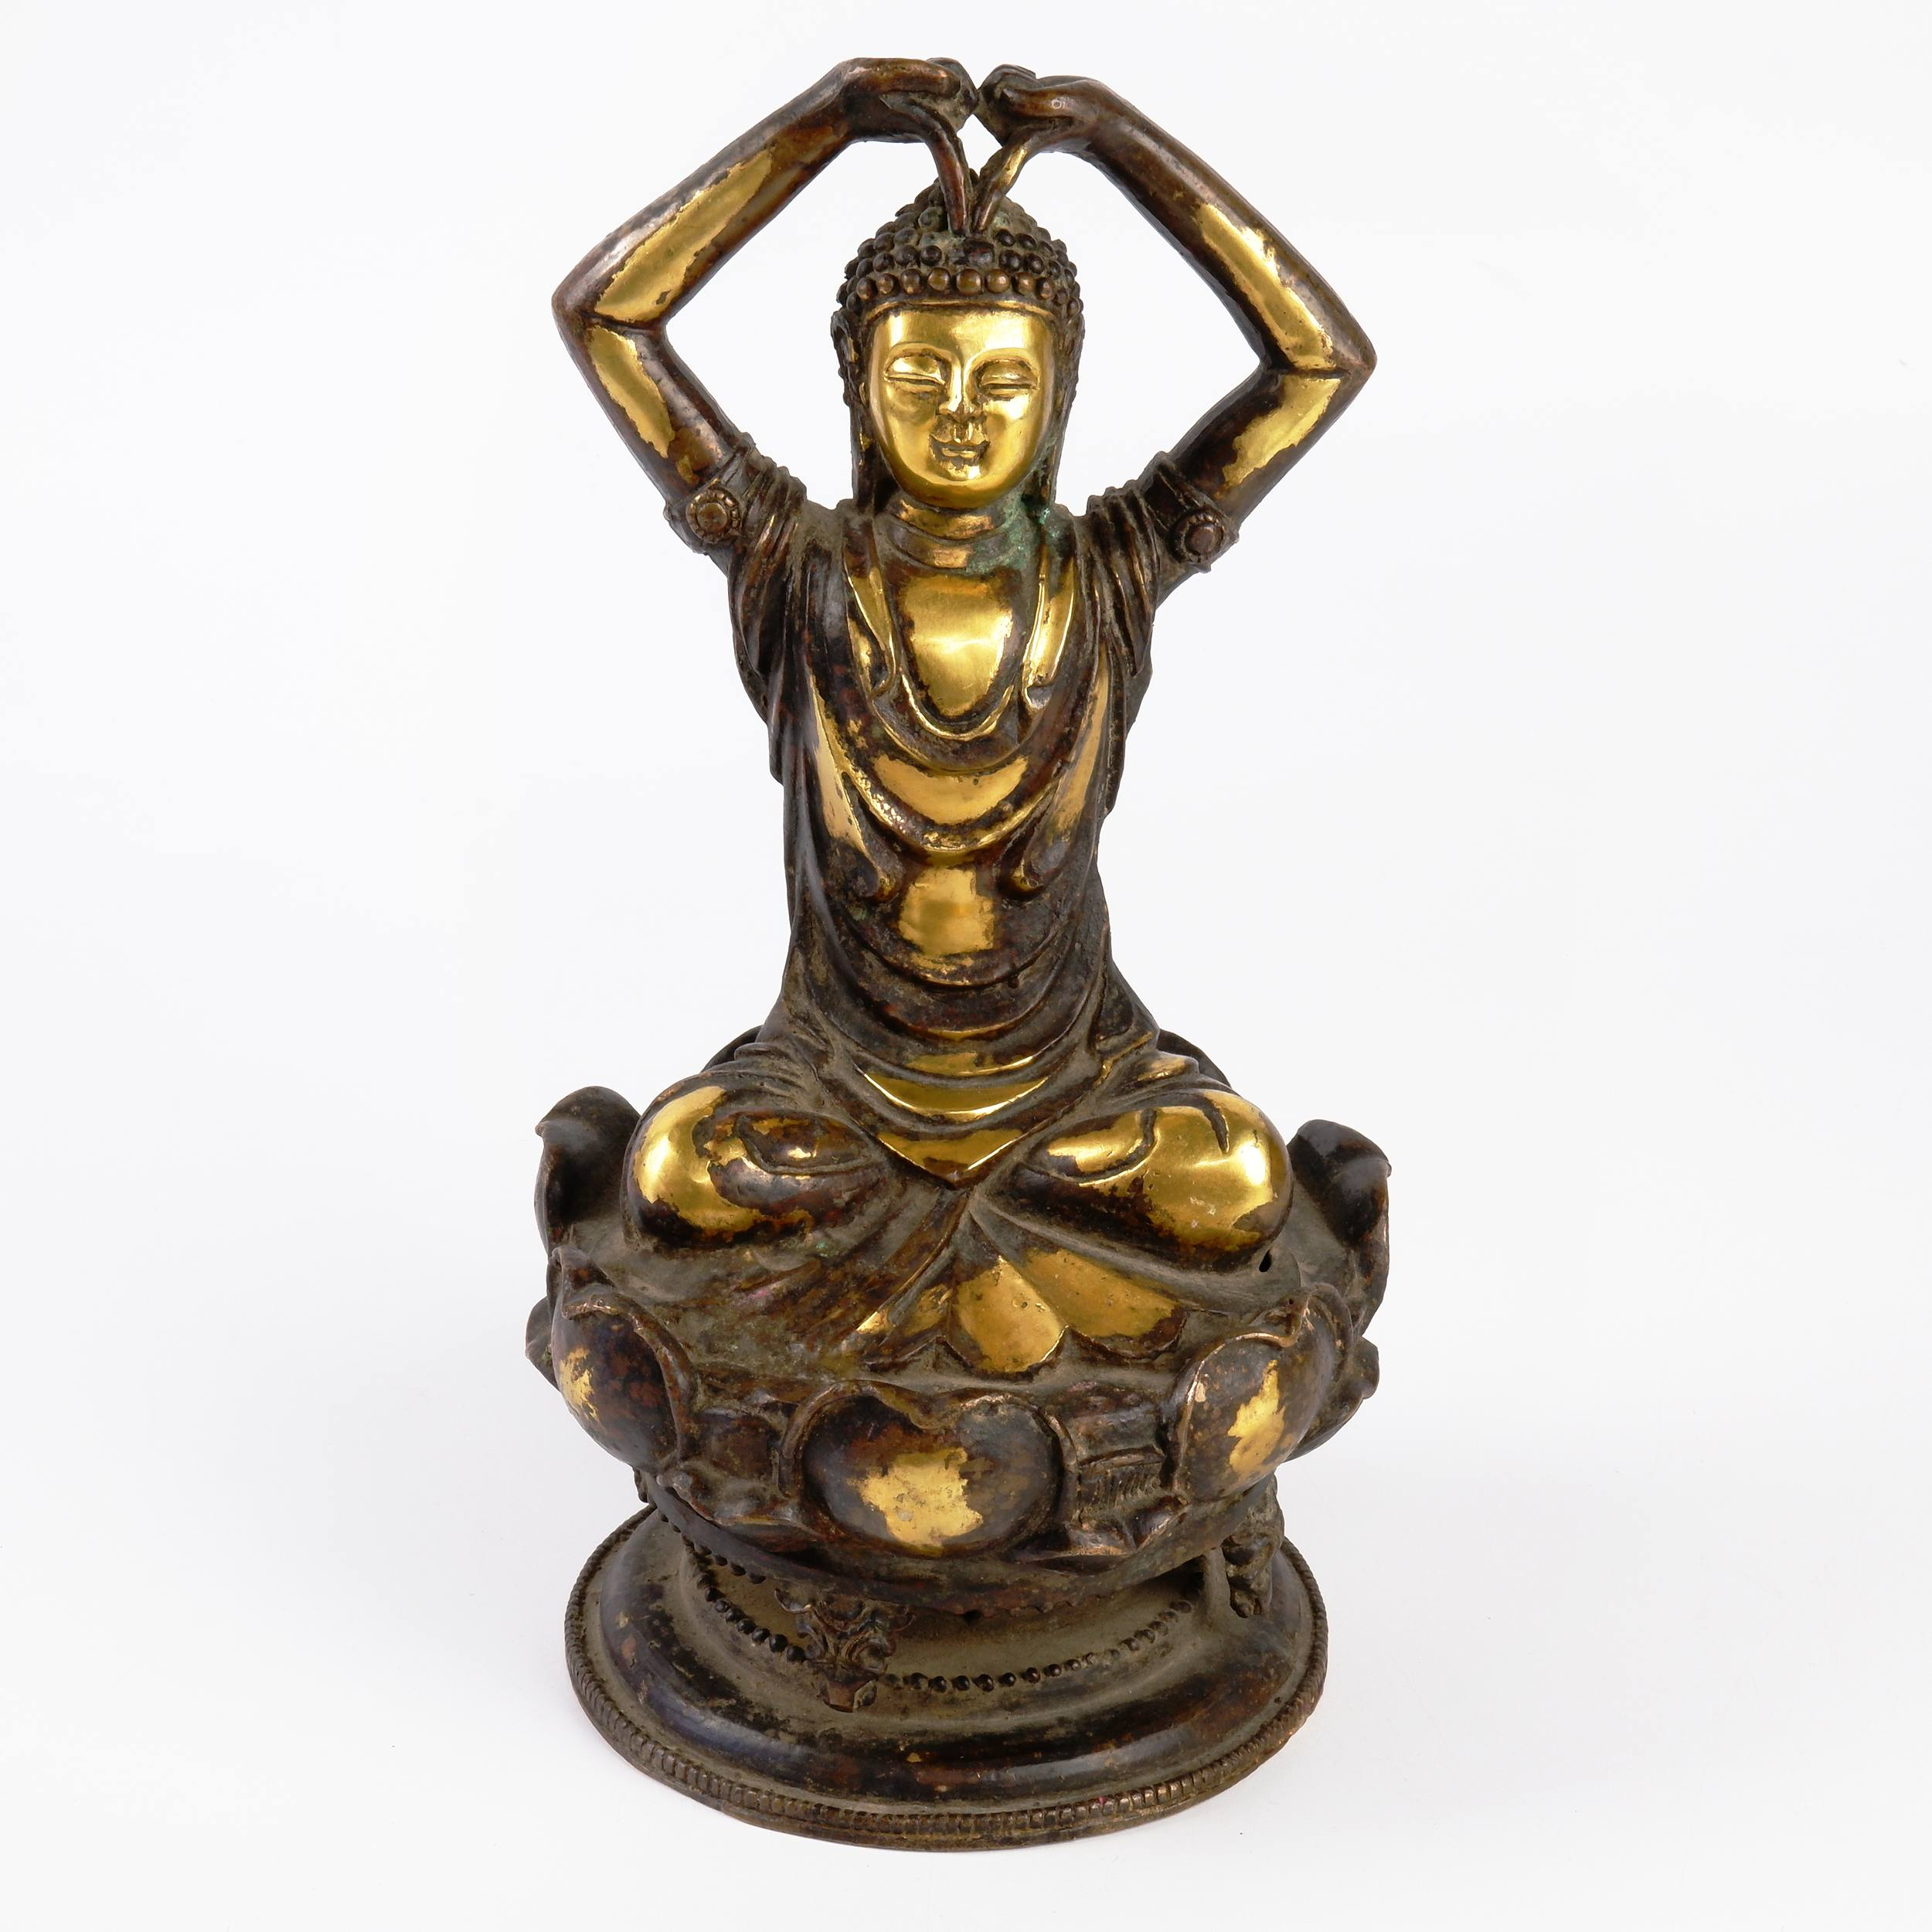 'Chinese Liao Style Figure of Buddha Jalandhara with Arms Held Above His Head'